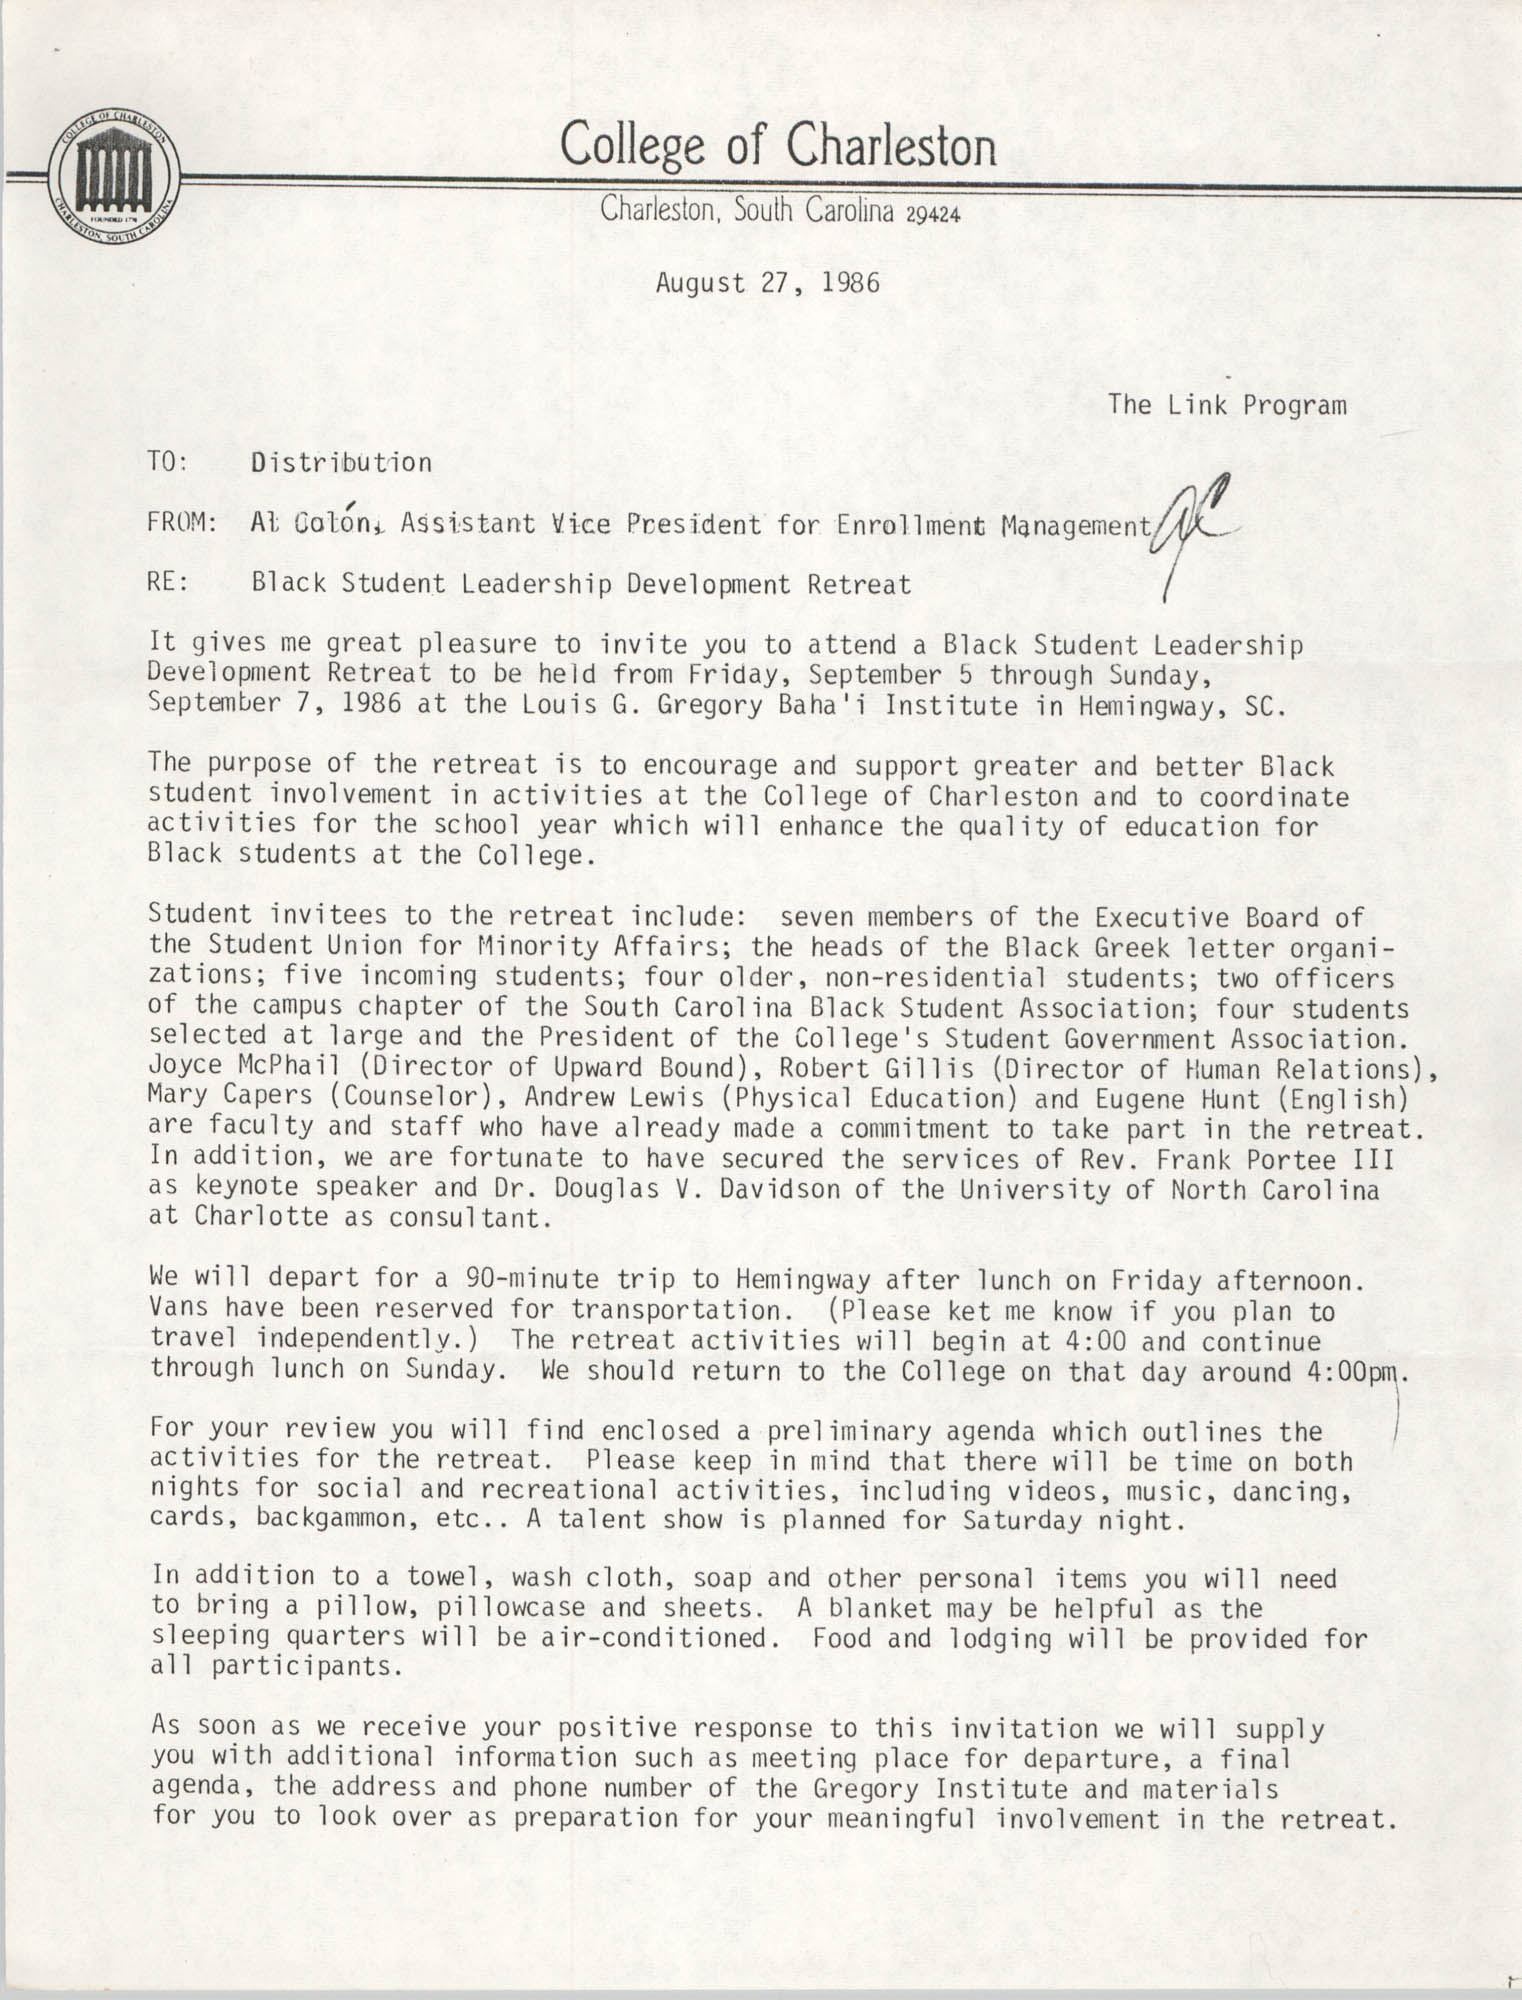 College of Charleston Memorandum, August 27, 1986